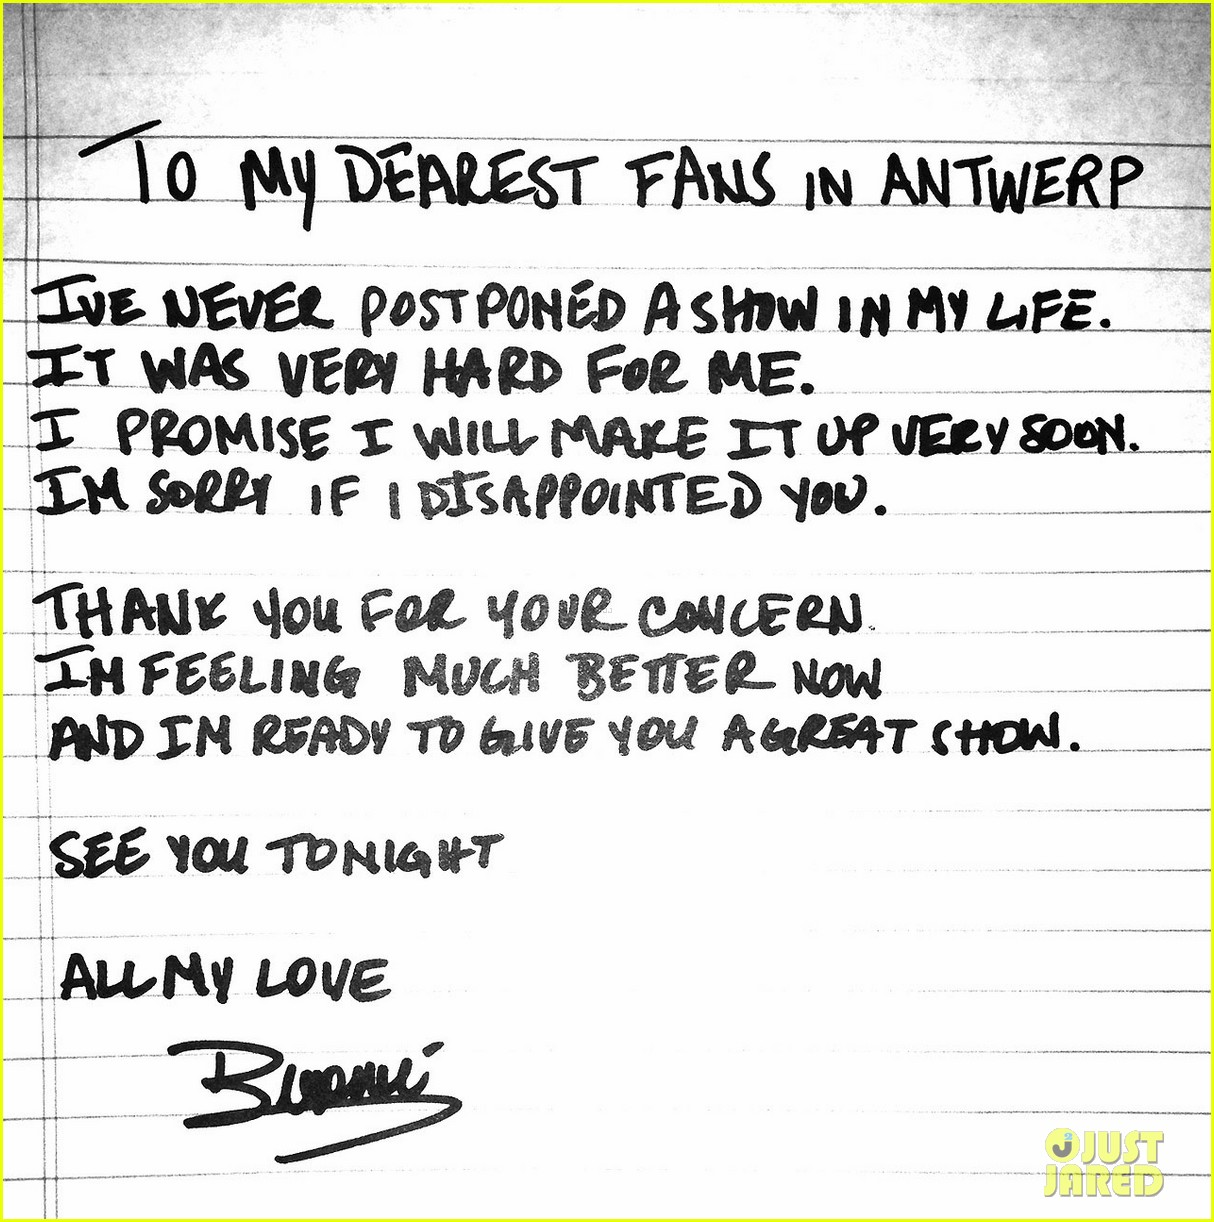 beyonce writes handwritten note after cancelled concert 01